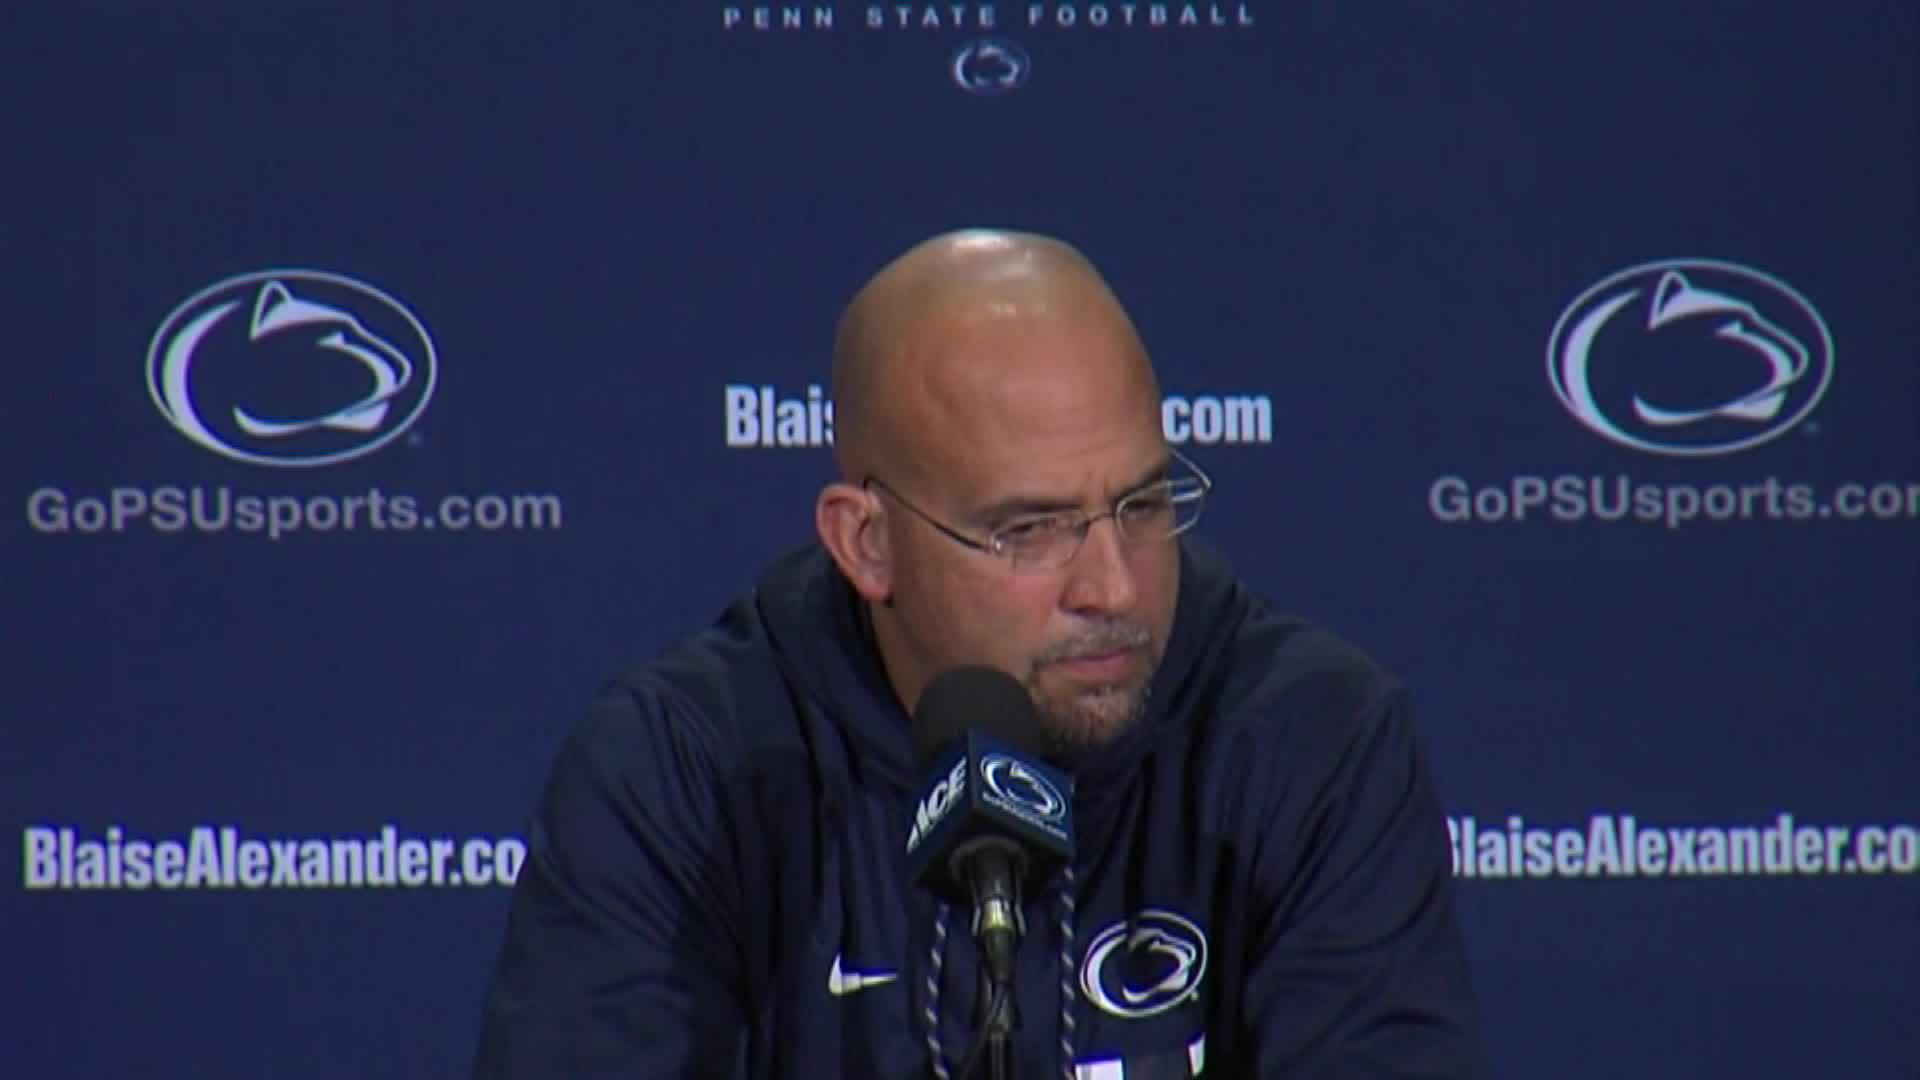 Coach_Franklin_discussed_aggressive_pena_0_20181121021851